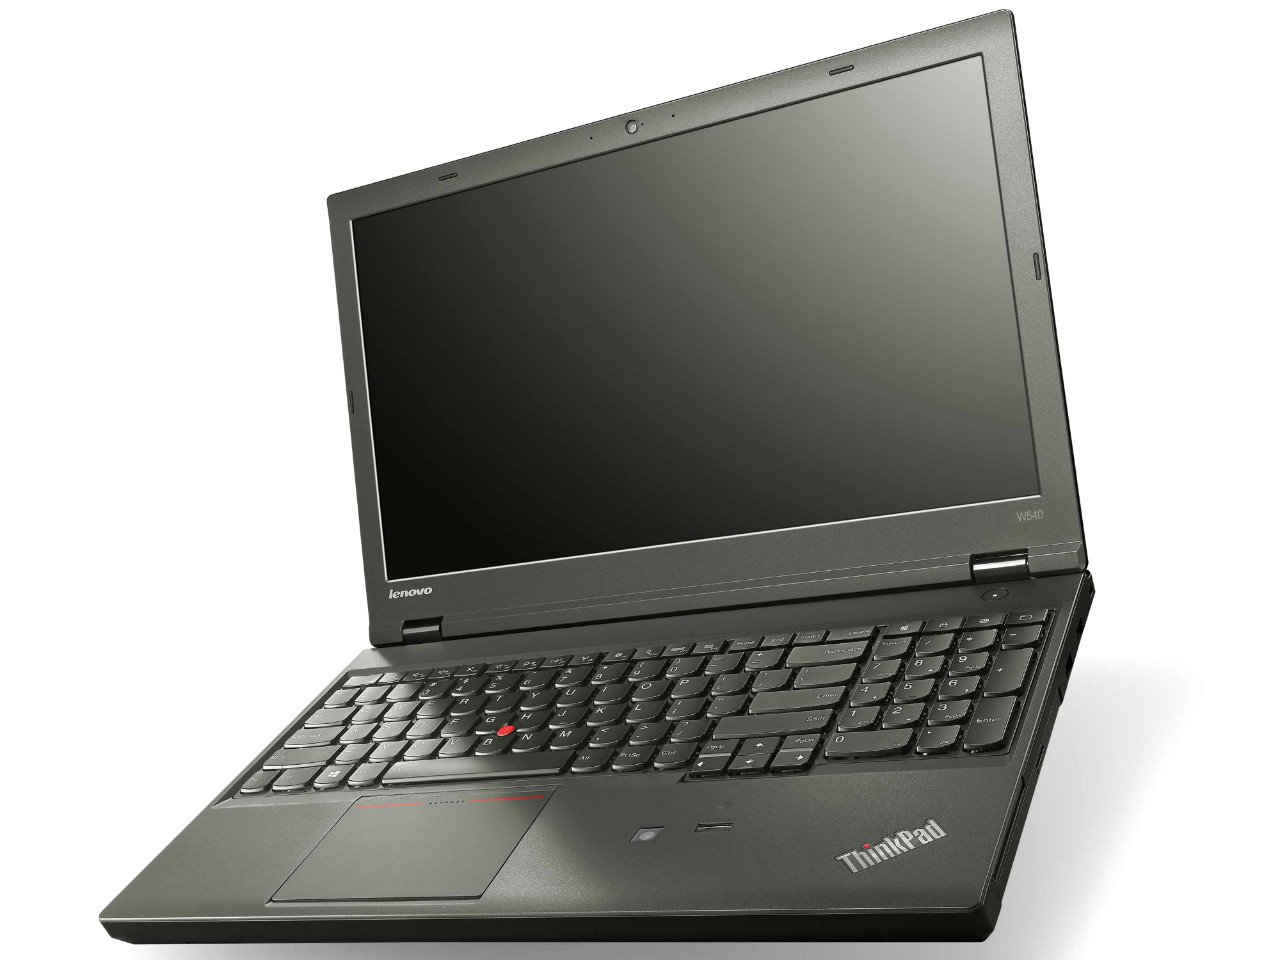 Lenovo Thinkpad W540 I7 Nvidia Workstation